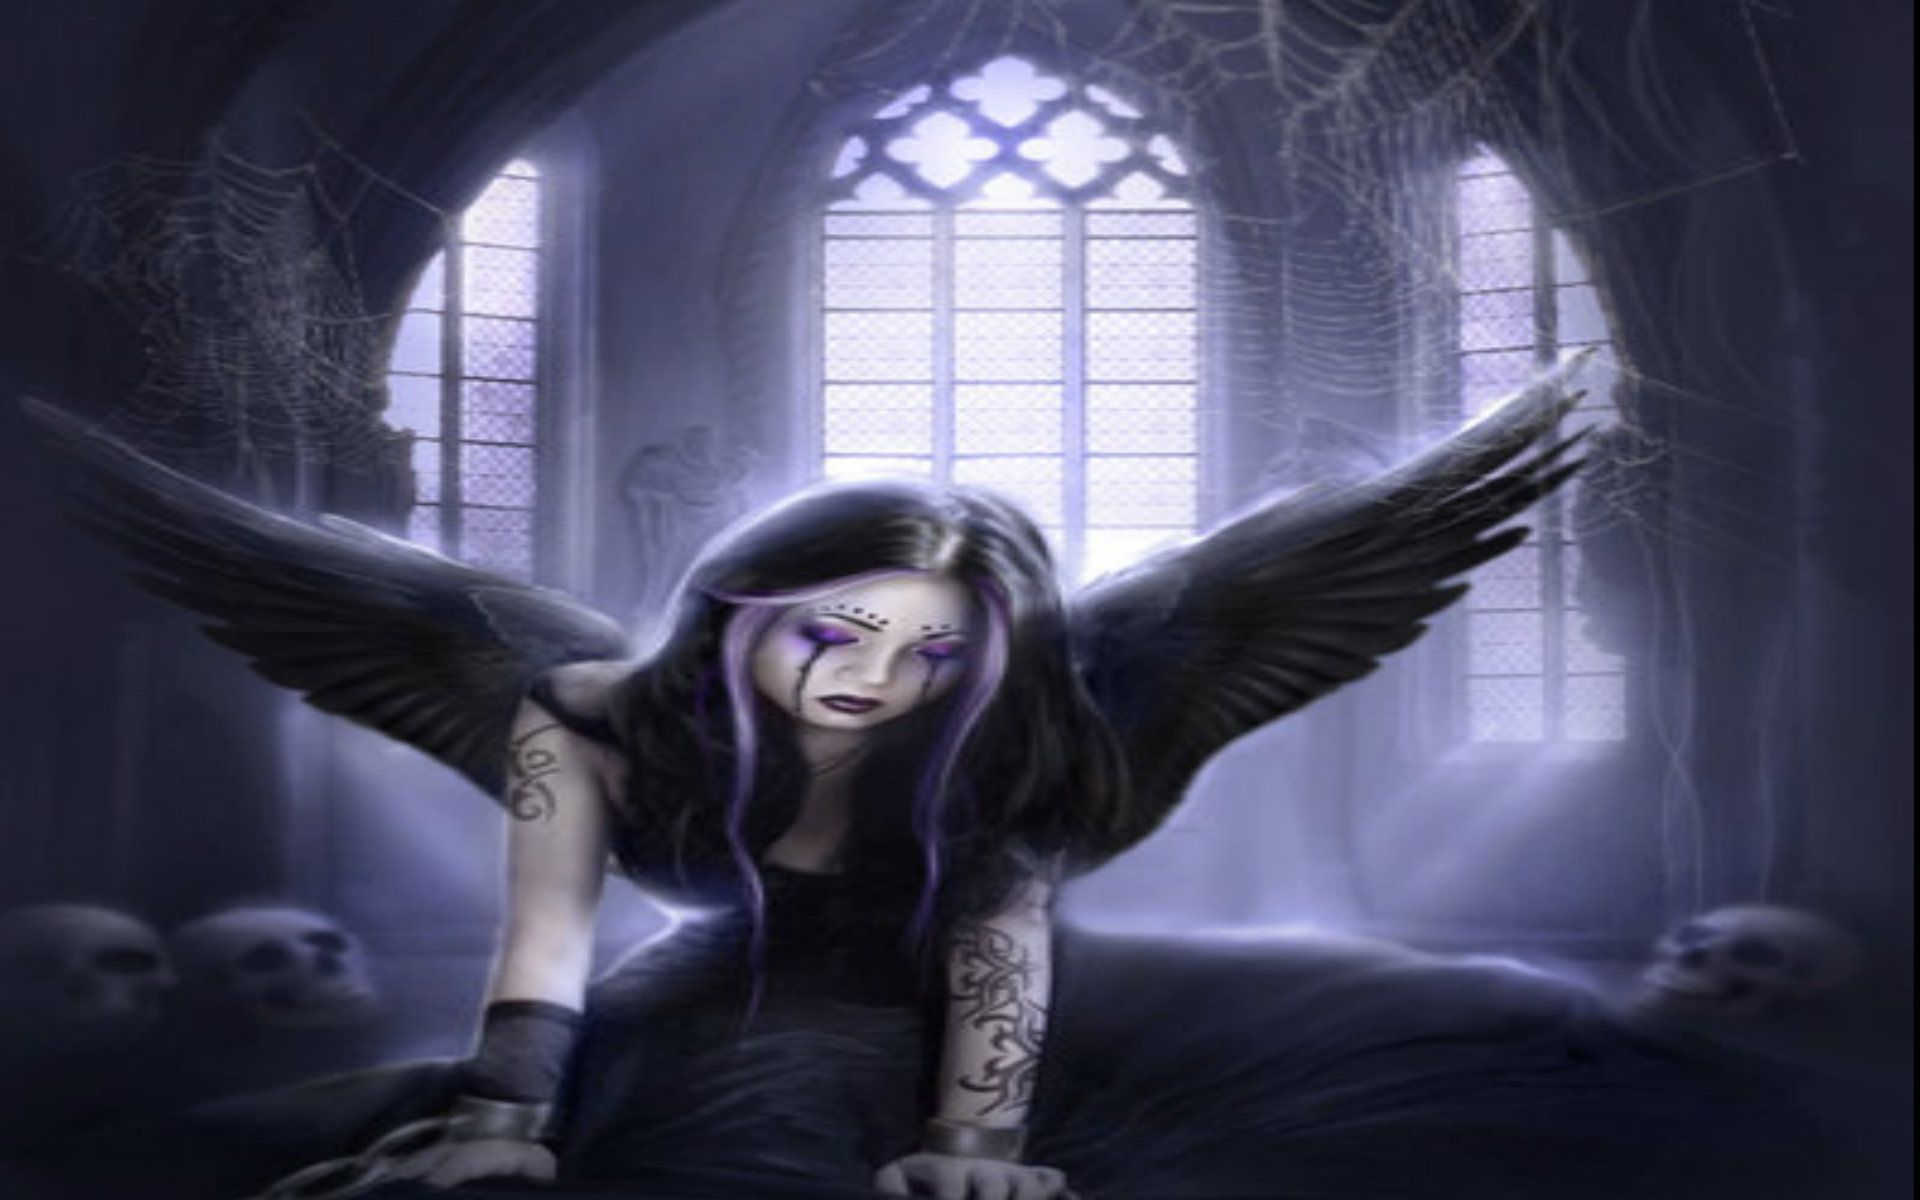 Gothic angel 3 background sad purple tattoo hd wallpaper all about the angels pinterest - Sad angel wallpaper ...